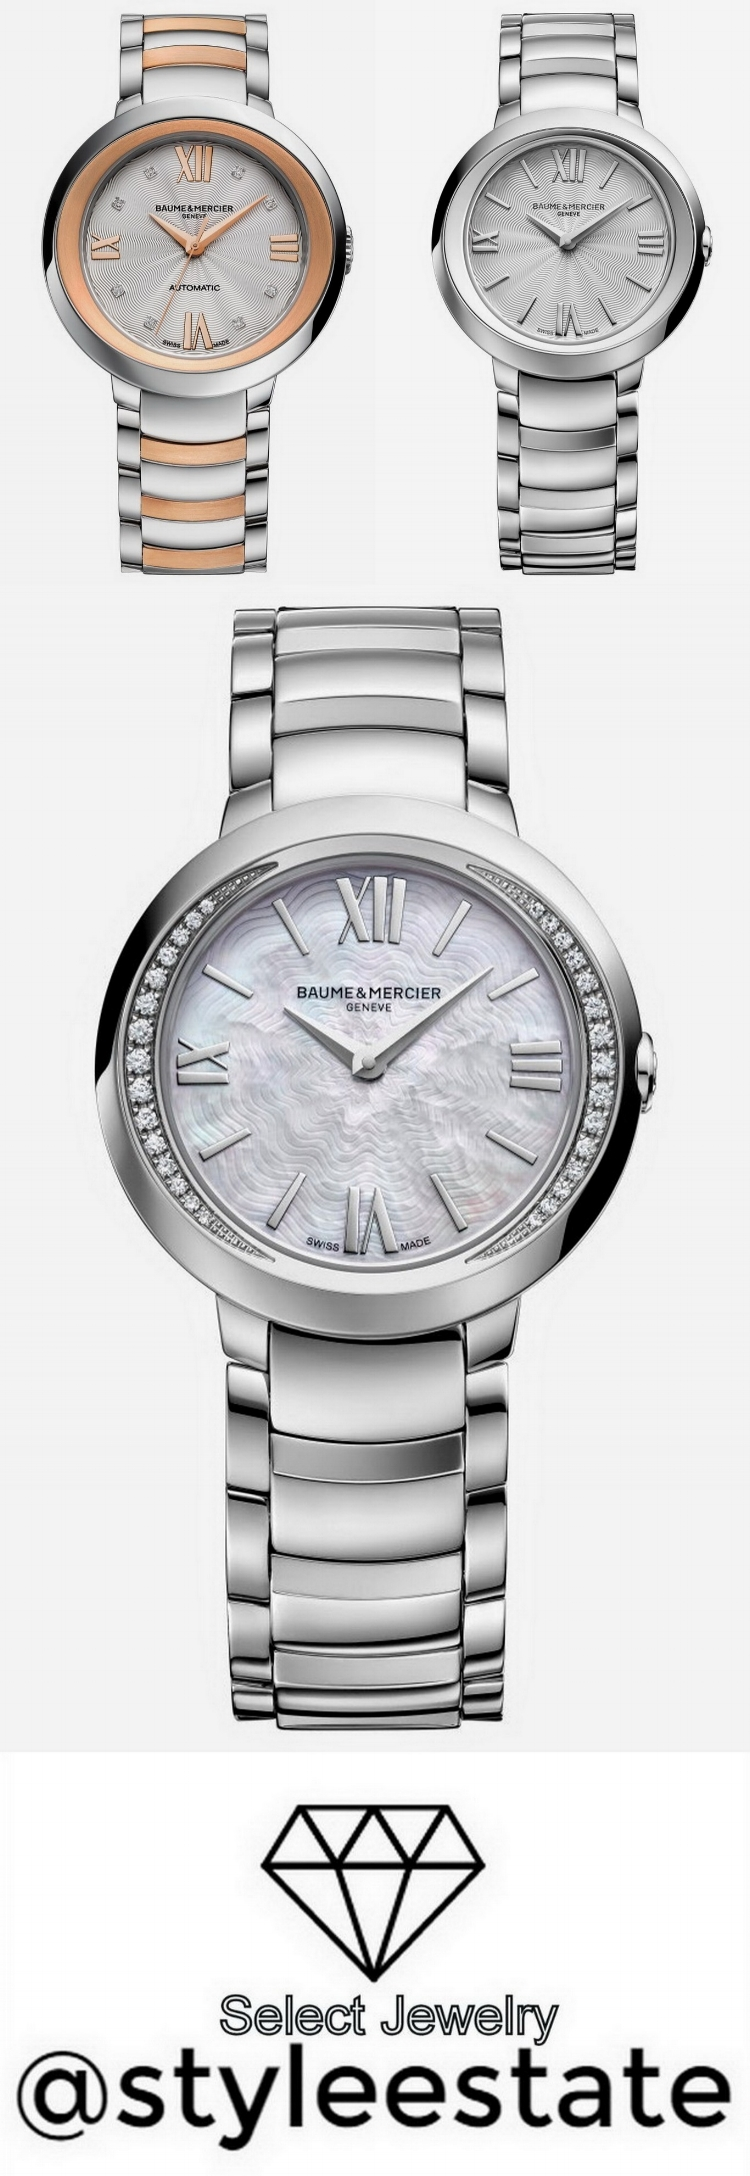 Baume & Mercier: First Ladies Watch Collection in 10+ Years